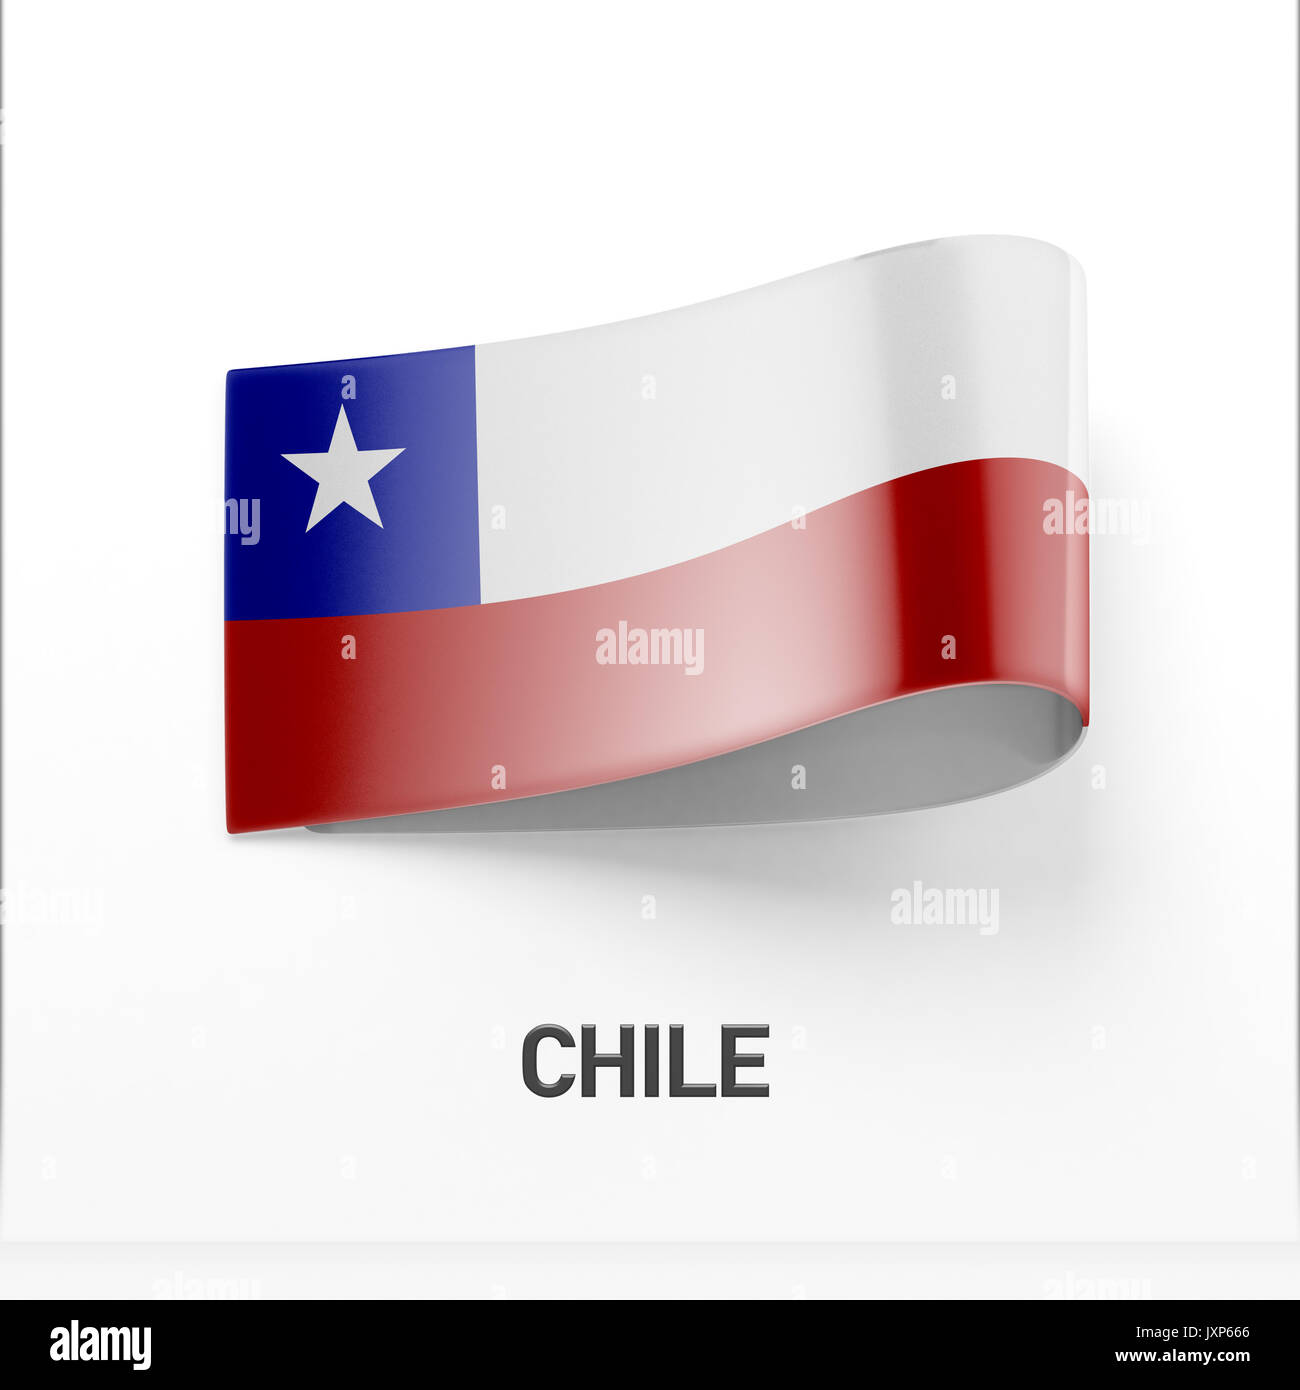 National flag chile in country stock photos national flag chile chile flag isolated on white background stock image biocorpaavc Images